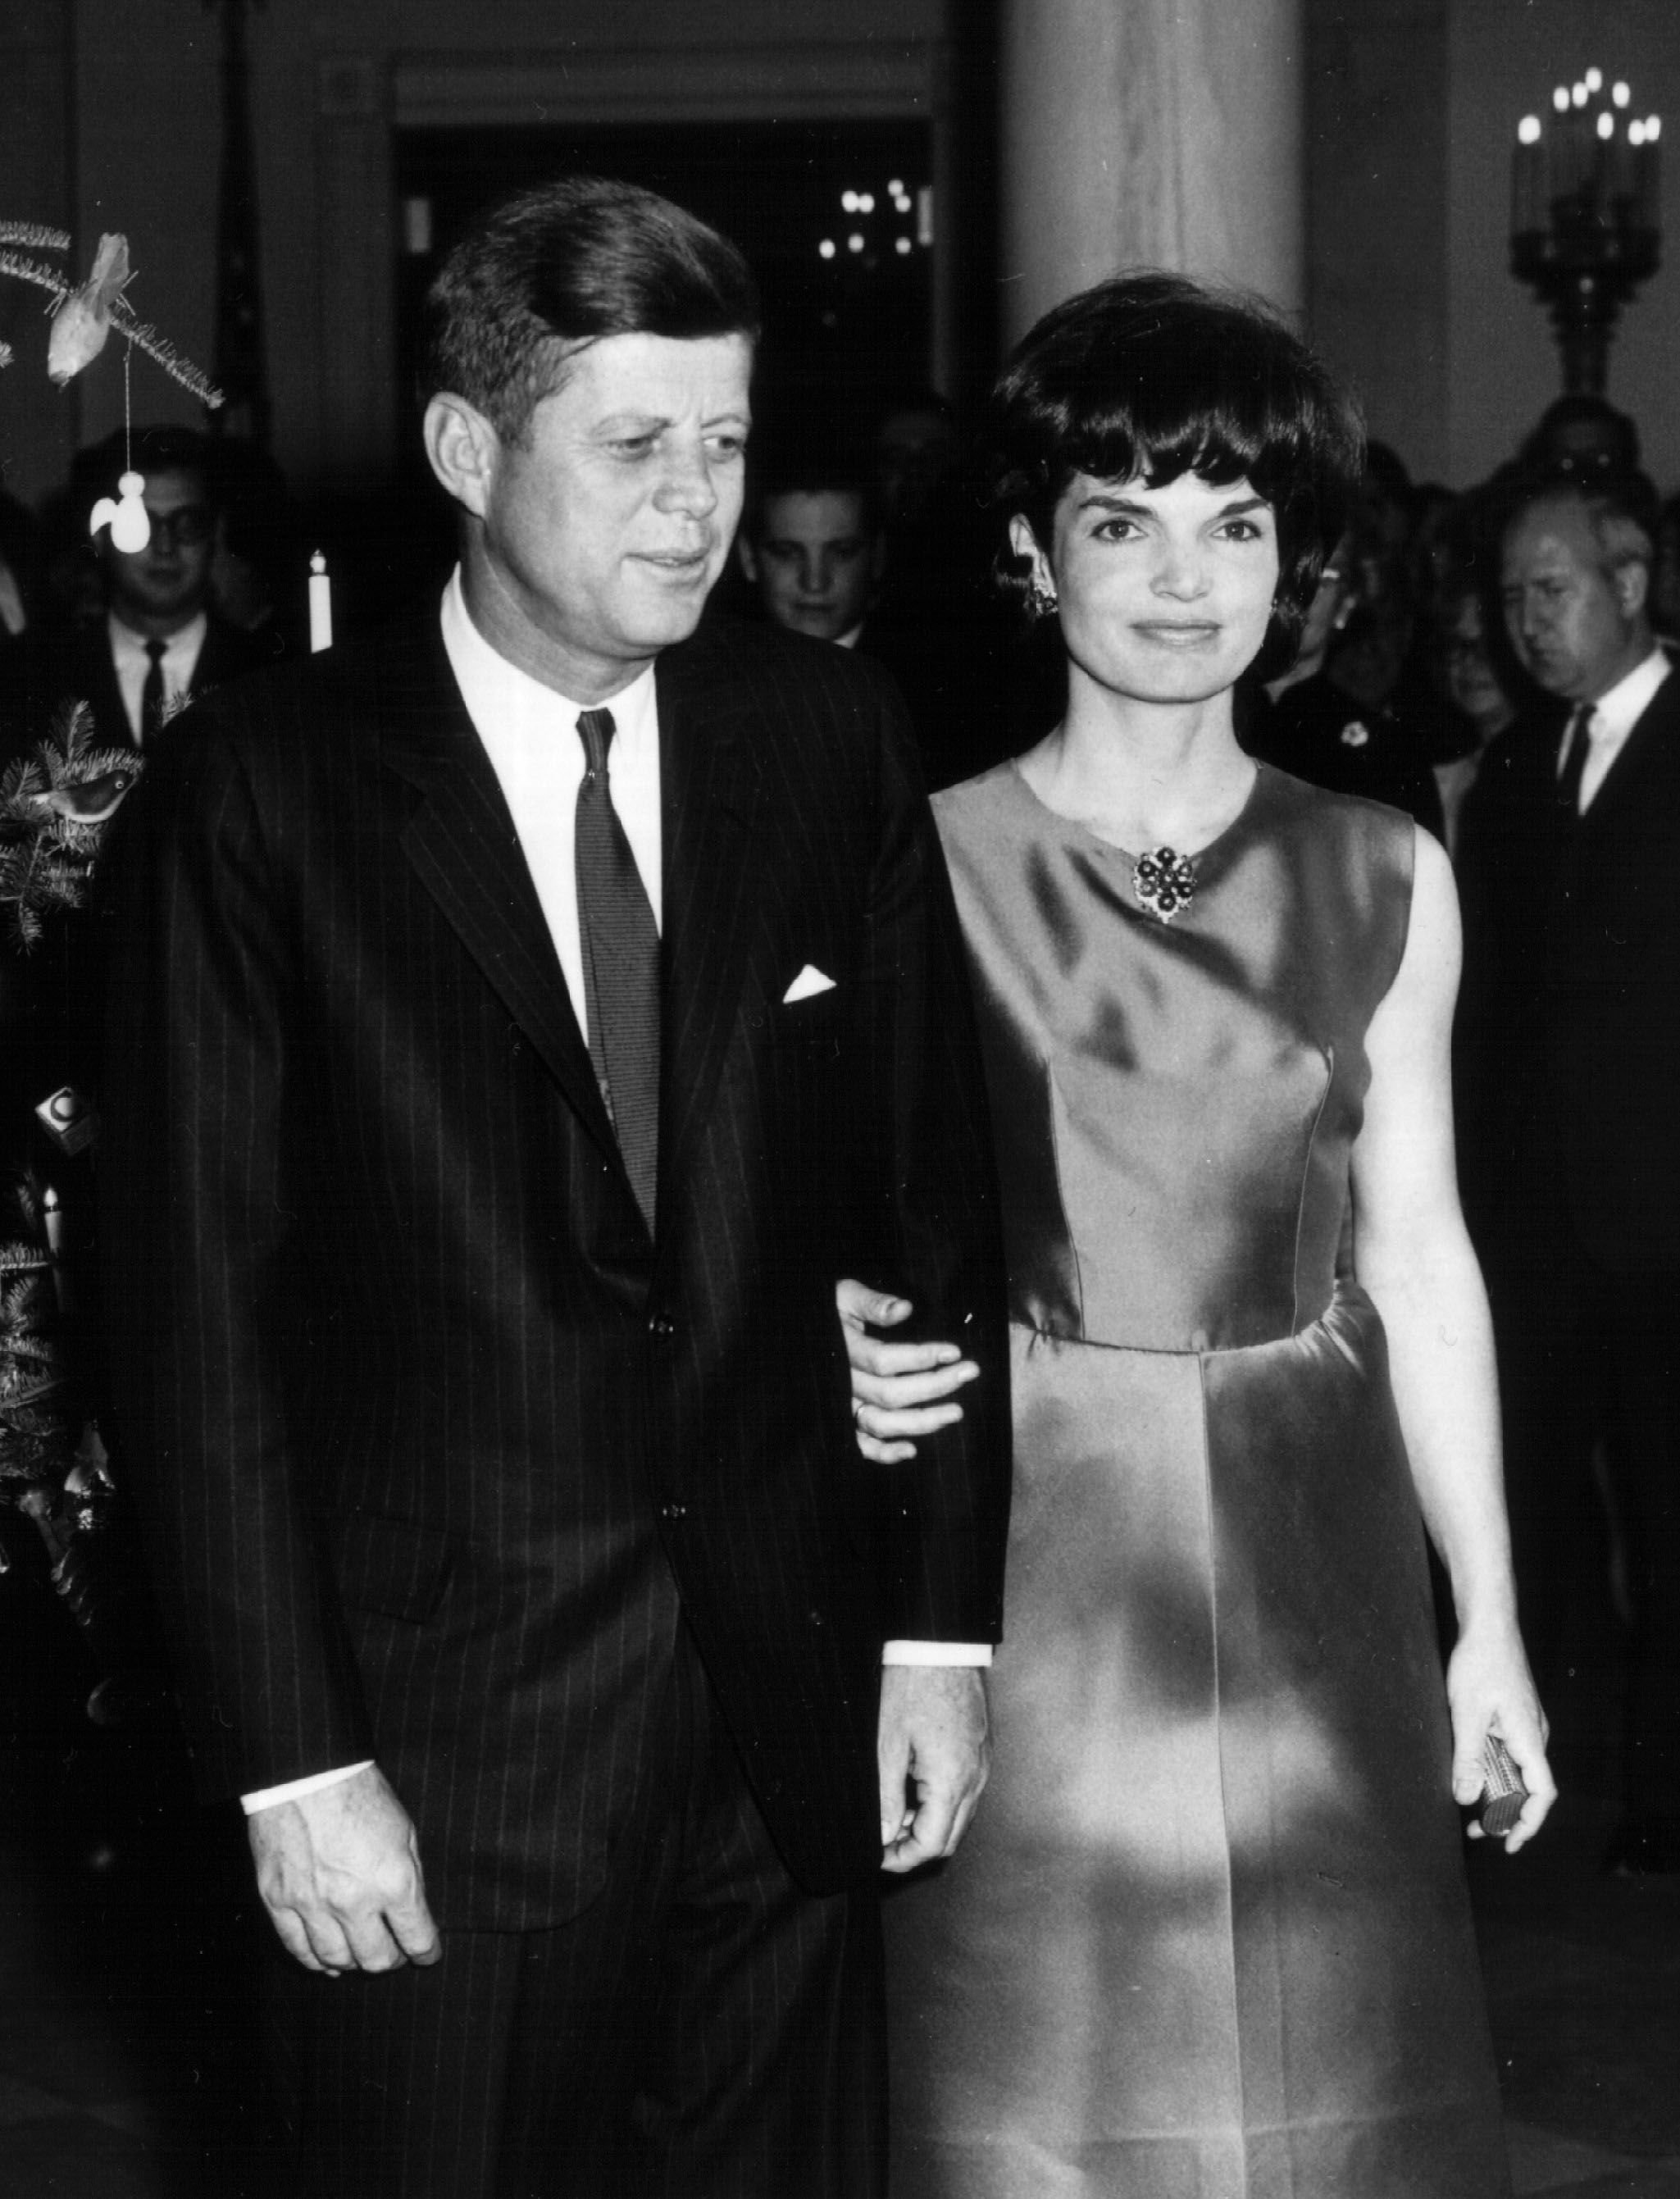 President John F. Kennedy and First Lady Jacqueline Kennedy at a White House Ceremony in December 1962, in Washington, D.C. | Photo: National Archive/Newsmakers/Getty Images